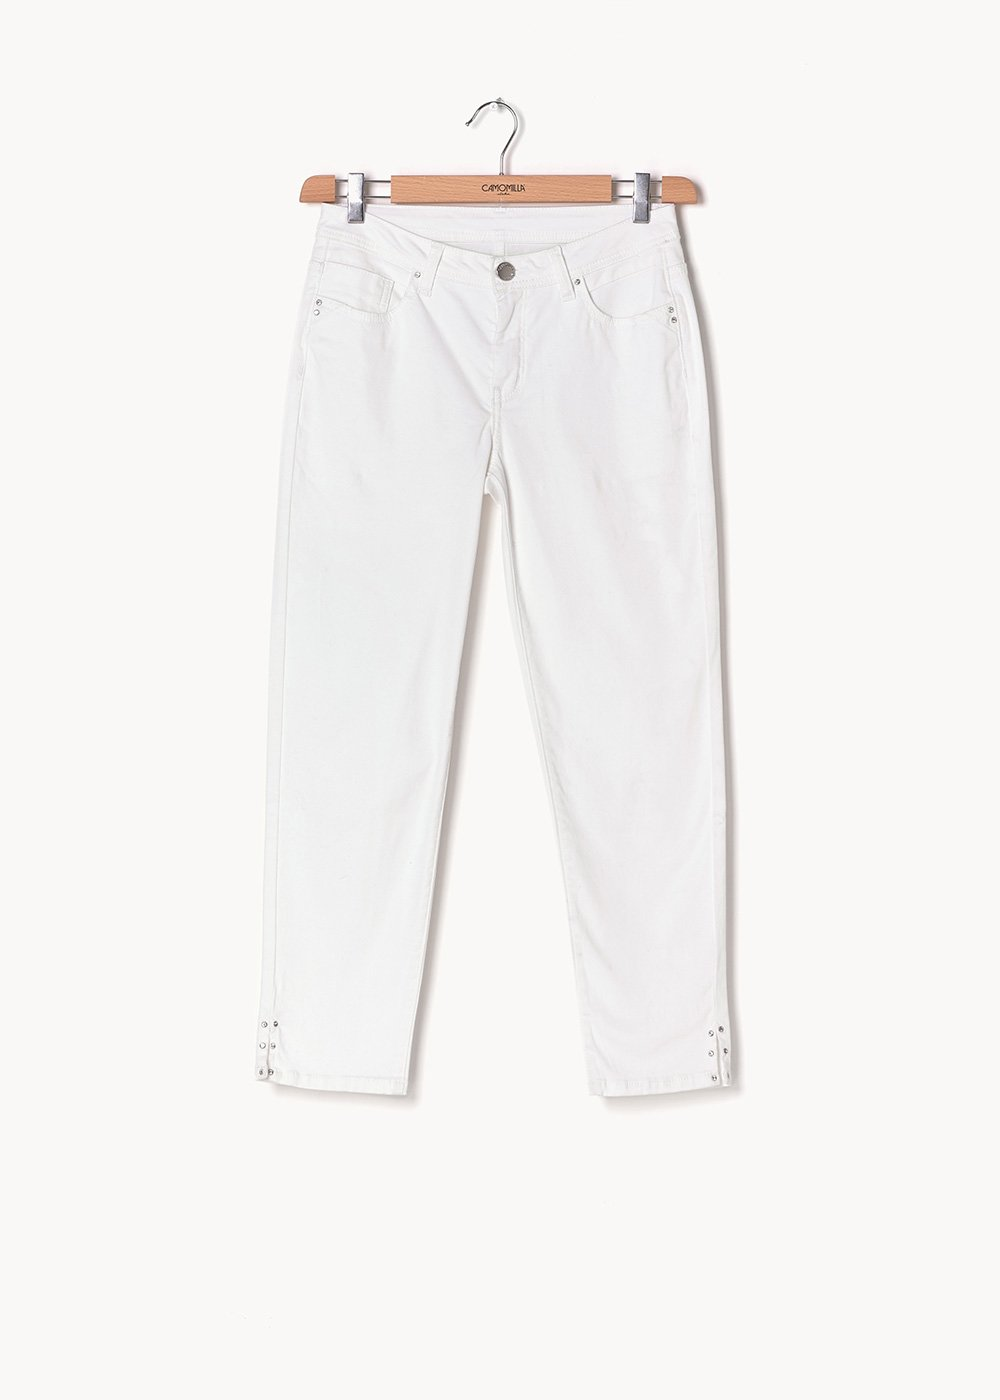 Pardy capri trousers with rhinestone detail at the bottom - White - Woman